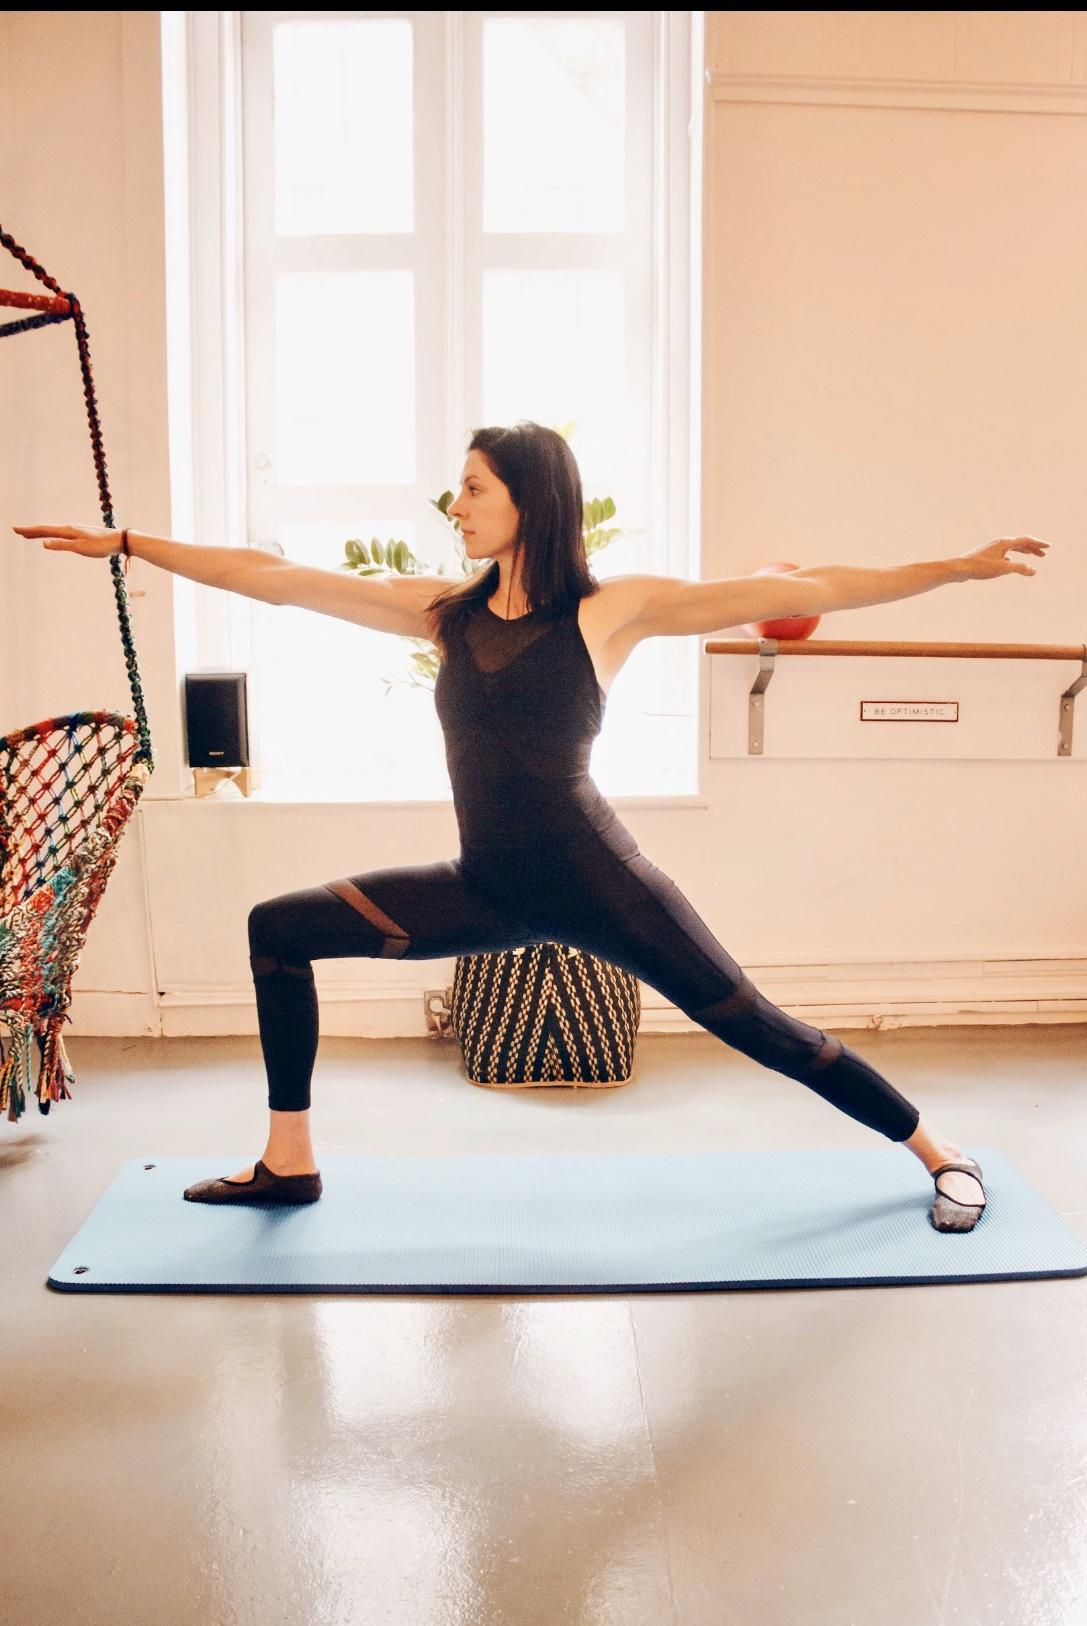 Reform Scuplt,with cardio,yoga and body weight